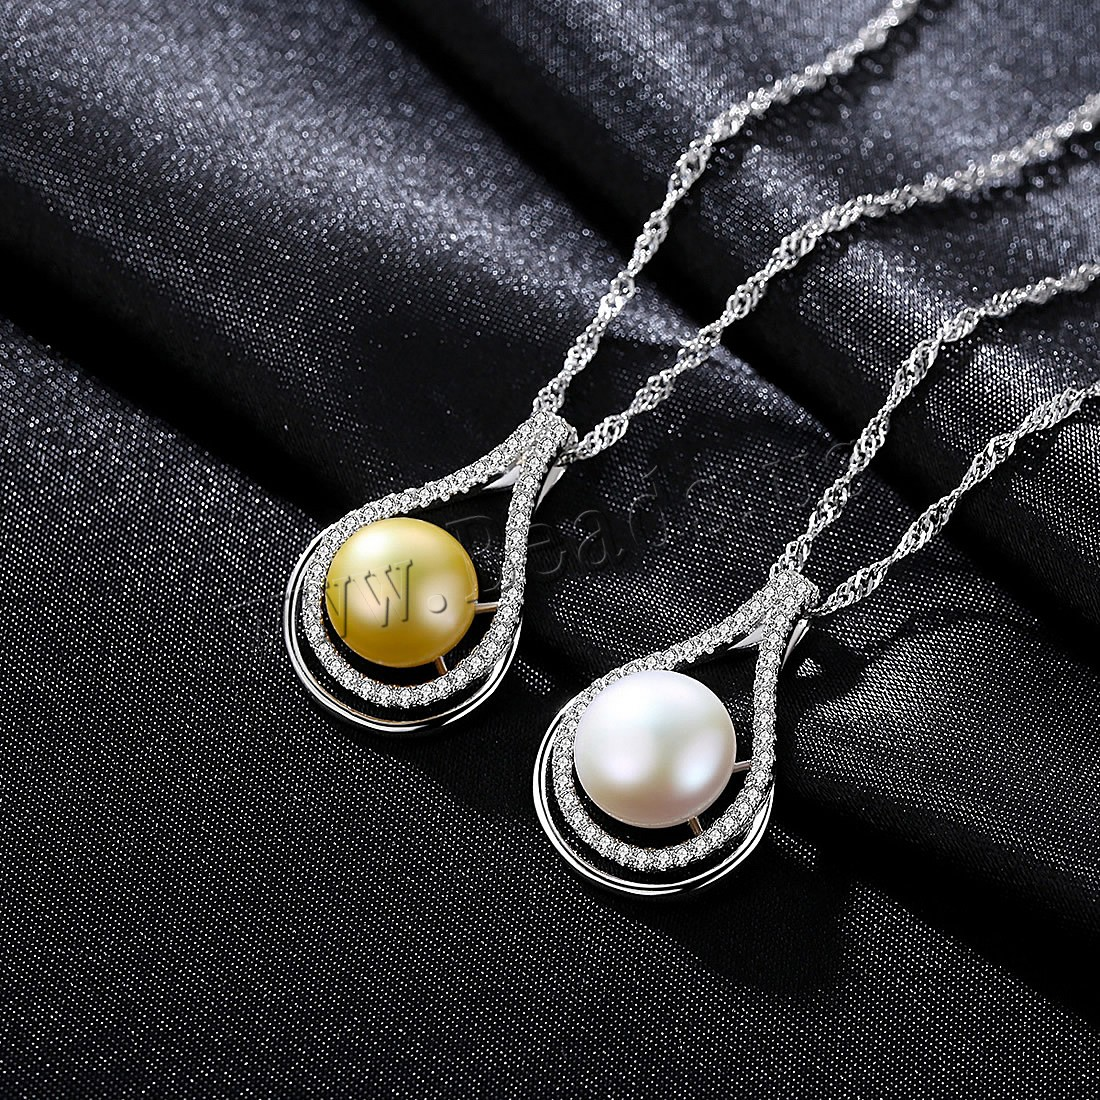 Buy Brass Necklace Freshwater Pearl 3cm extender chain platinum color plated Singapore chain & woman & cubic zirconia colors choice nickel lead & cadmium free 26x17mm Sold Per Approx 16.5 Inch Strand